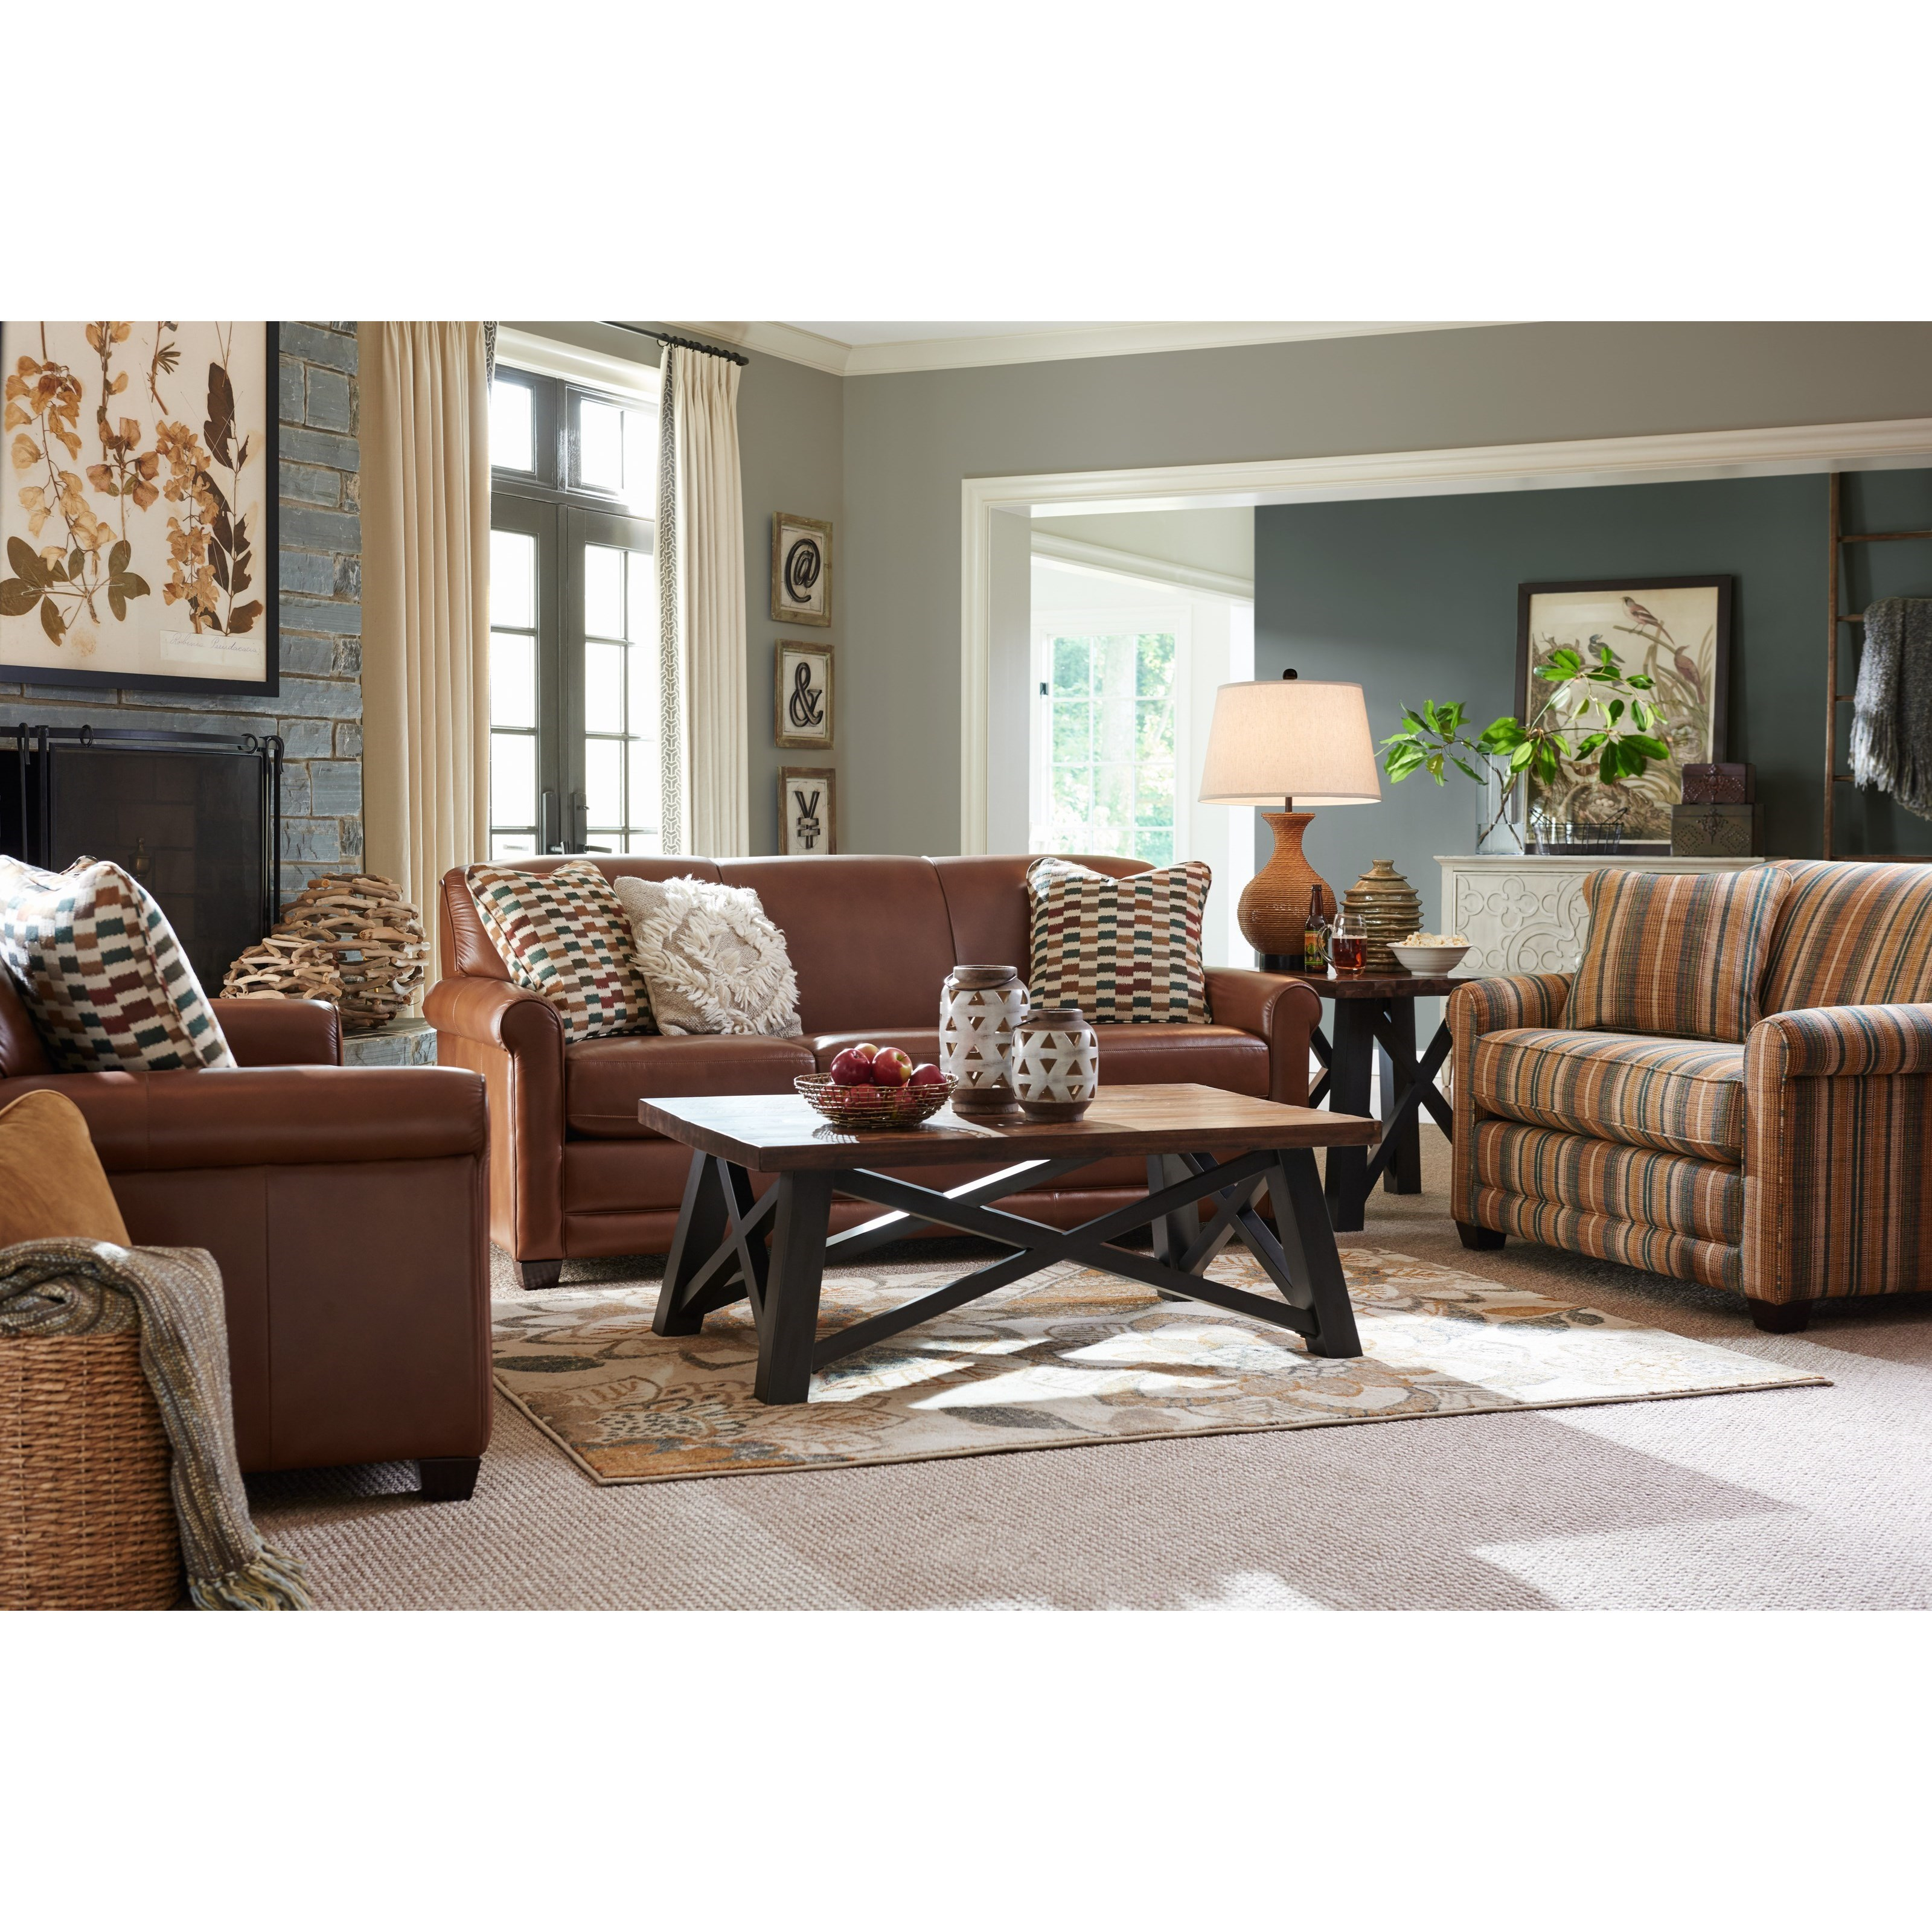 Amanda Living Room Group by La-Z-Boy at Bennett's Furniture and Mattresses